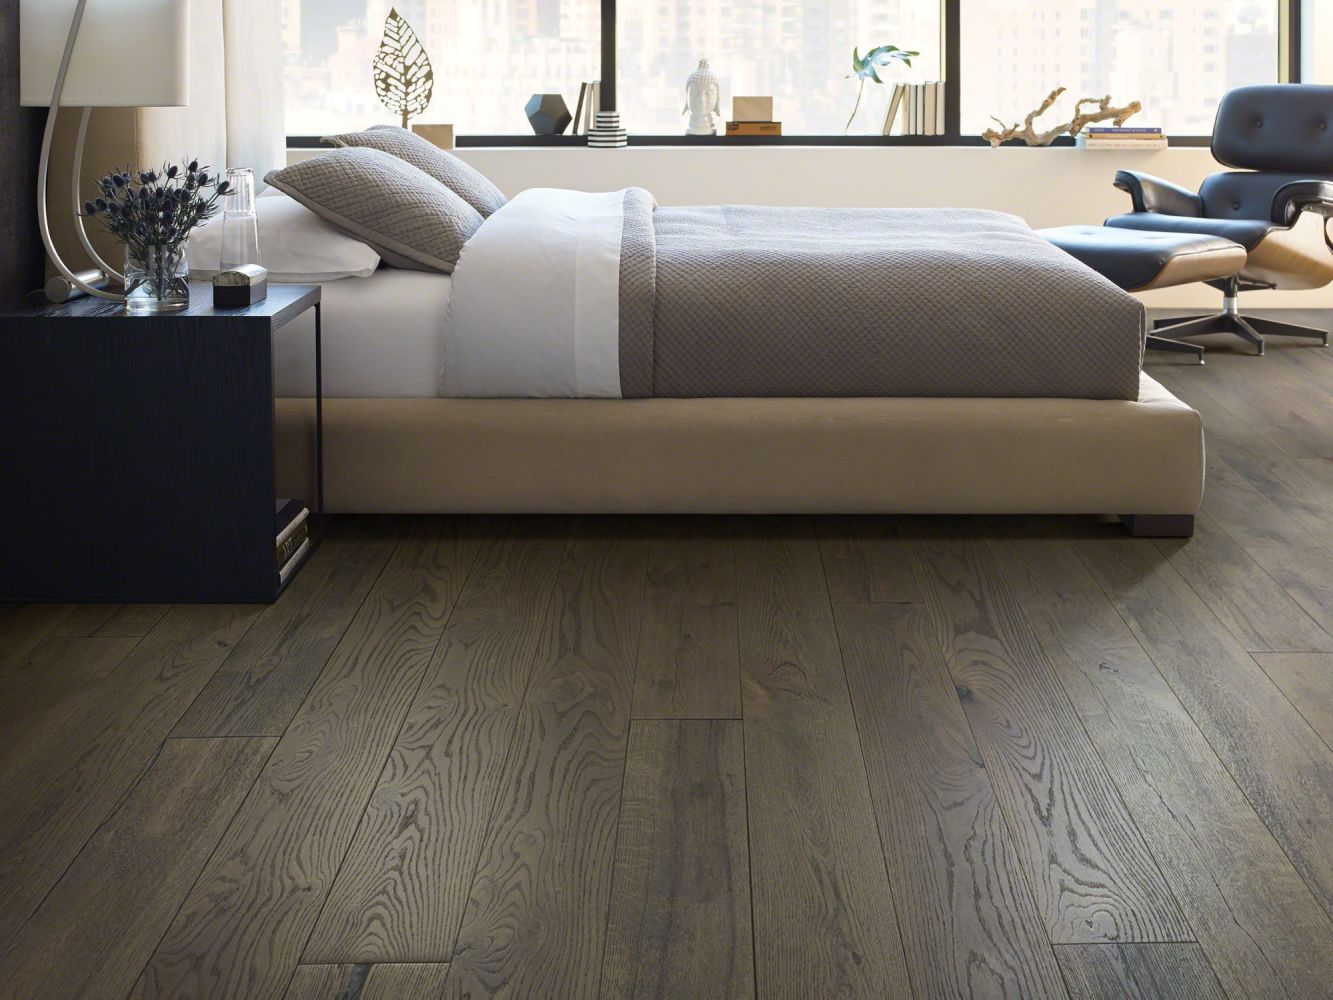 Shaw Floors Repel Hardwood Inspirations White Oak Terrain 07029_213SA